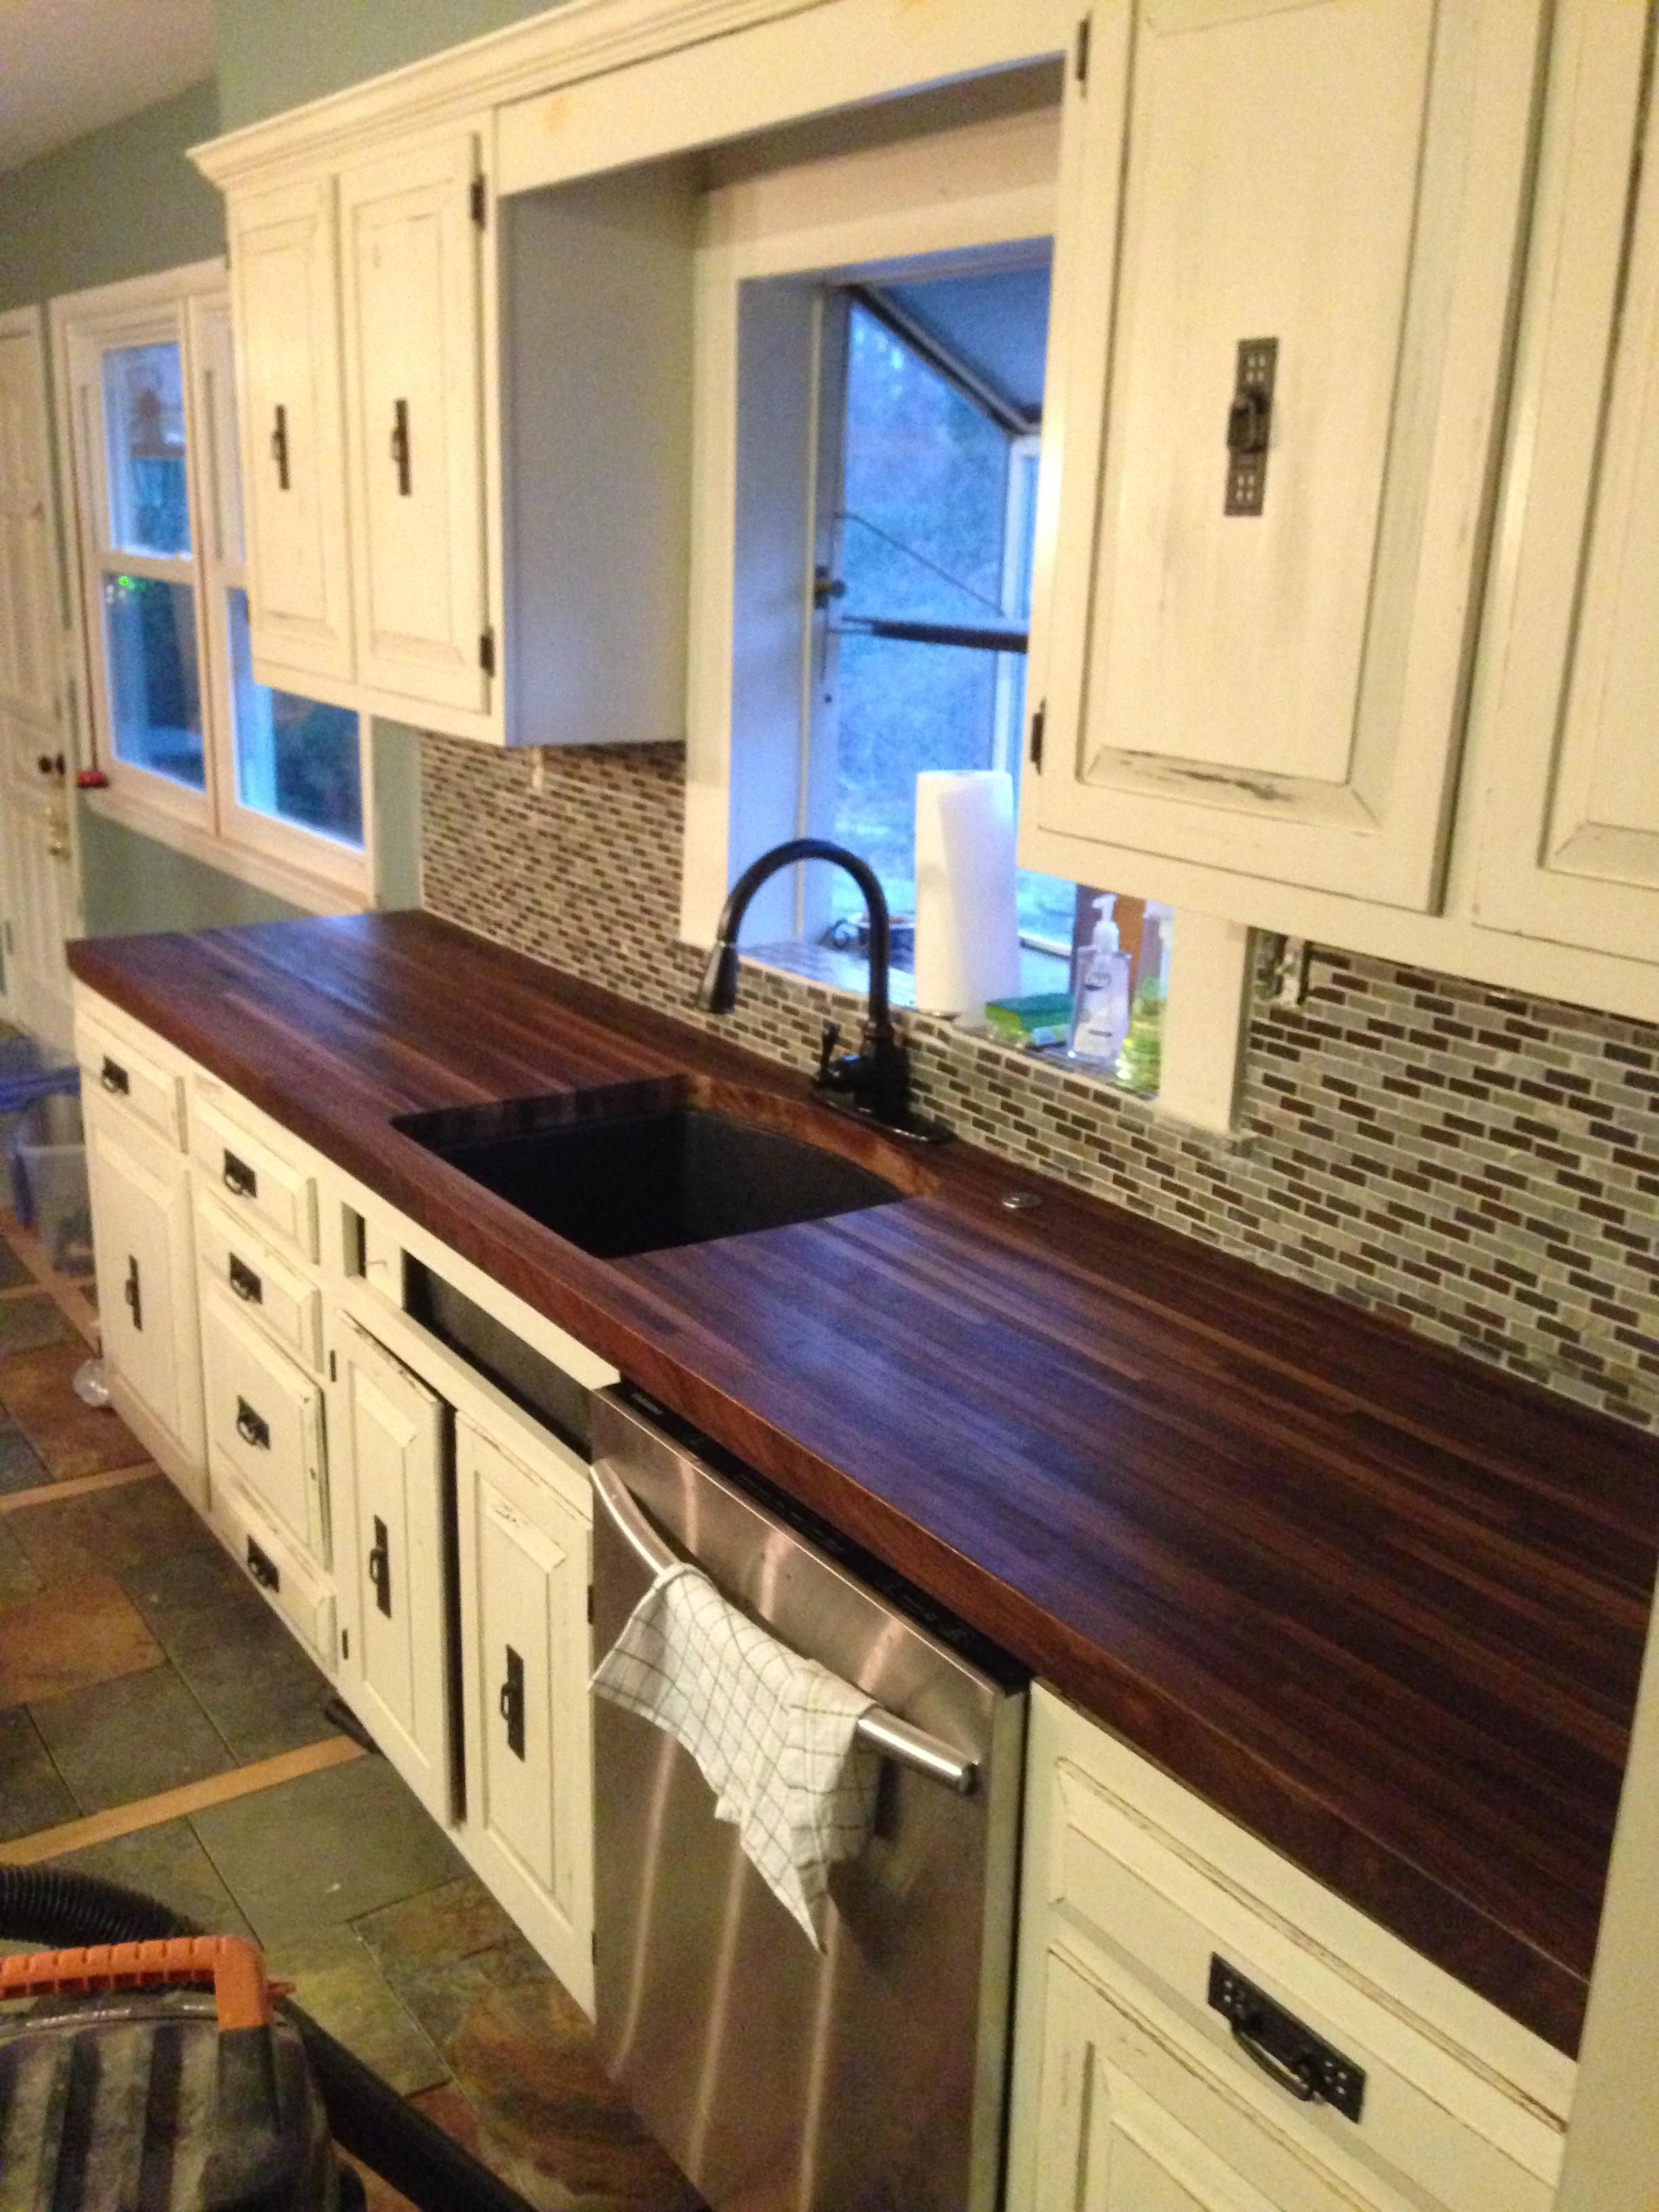 Diy Tile Kitchen Countertops Built A Pair Of Black Walnut Butcher Block Countertops To Replace